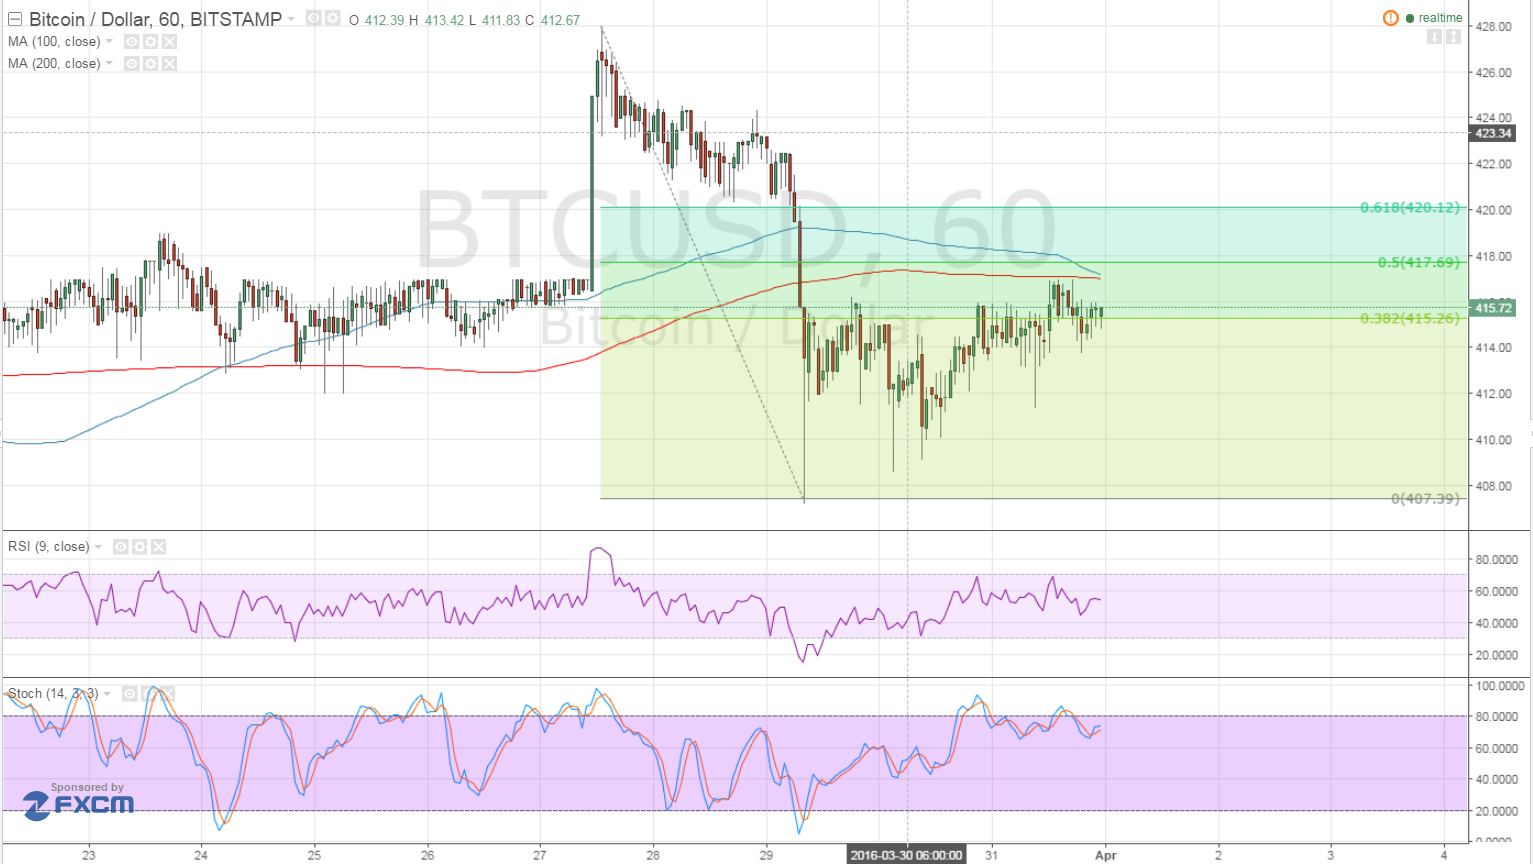 Bitcoin Price Technical Analysis for 04/01/2016 - Short-Term Area of Interest